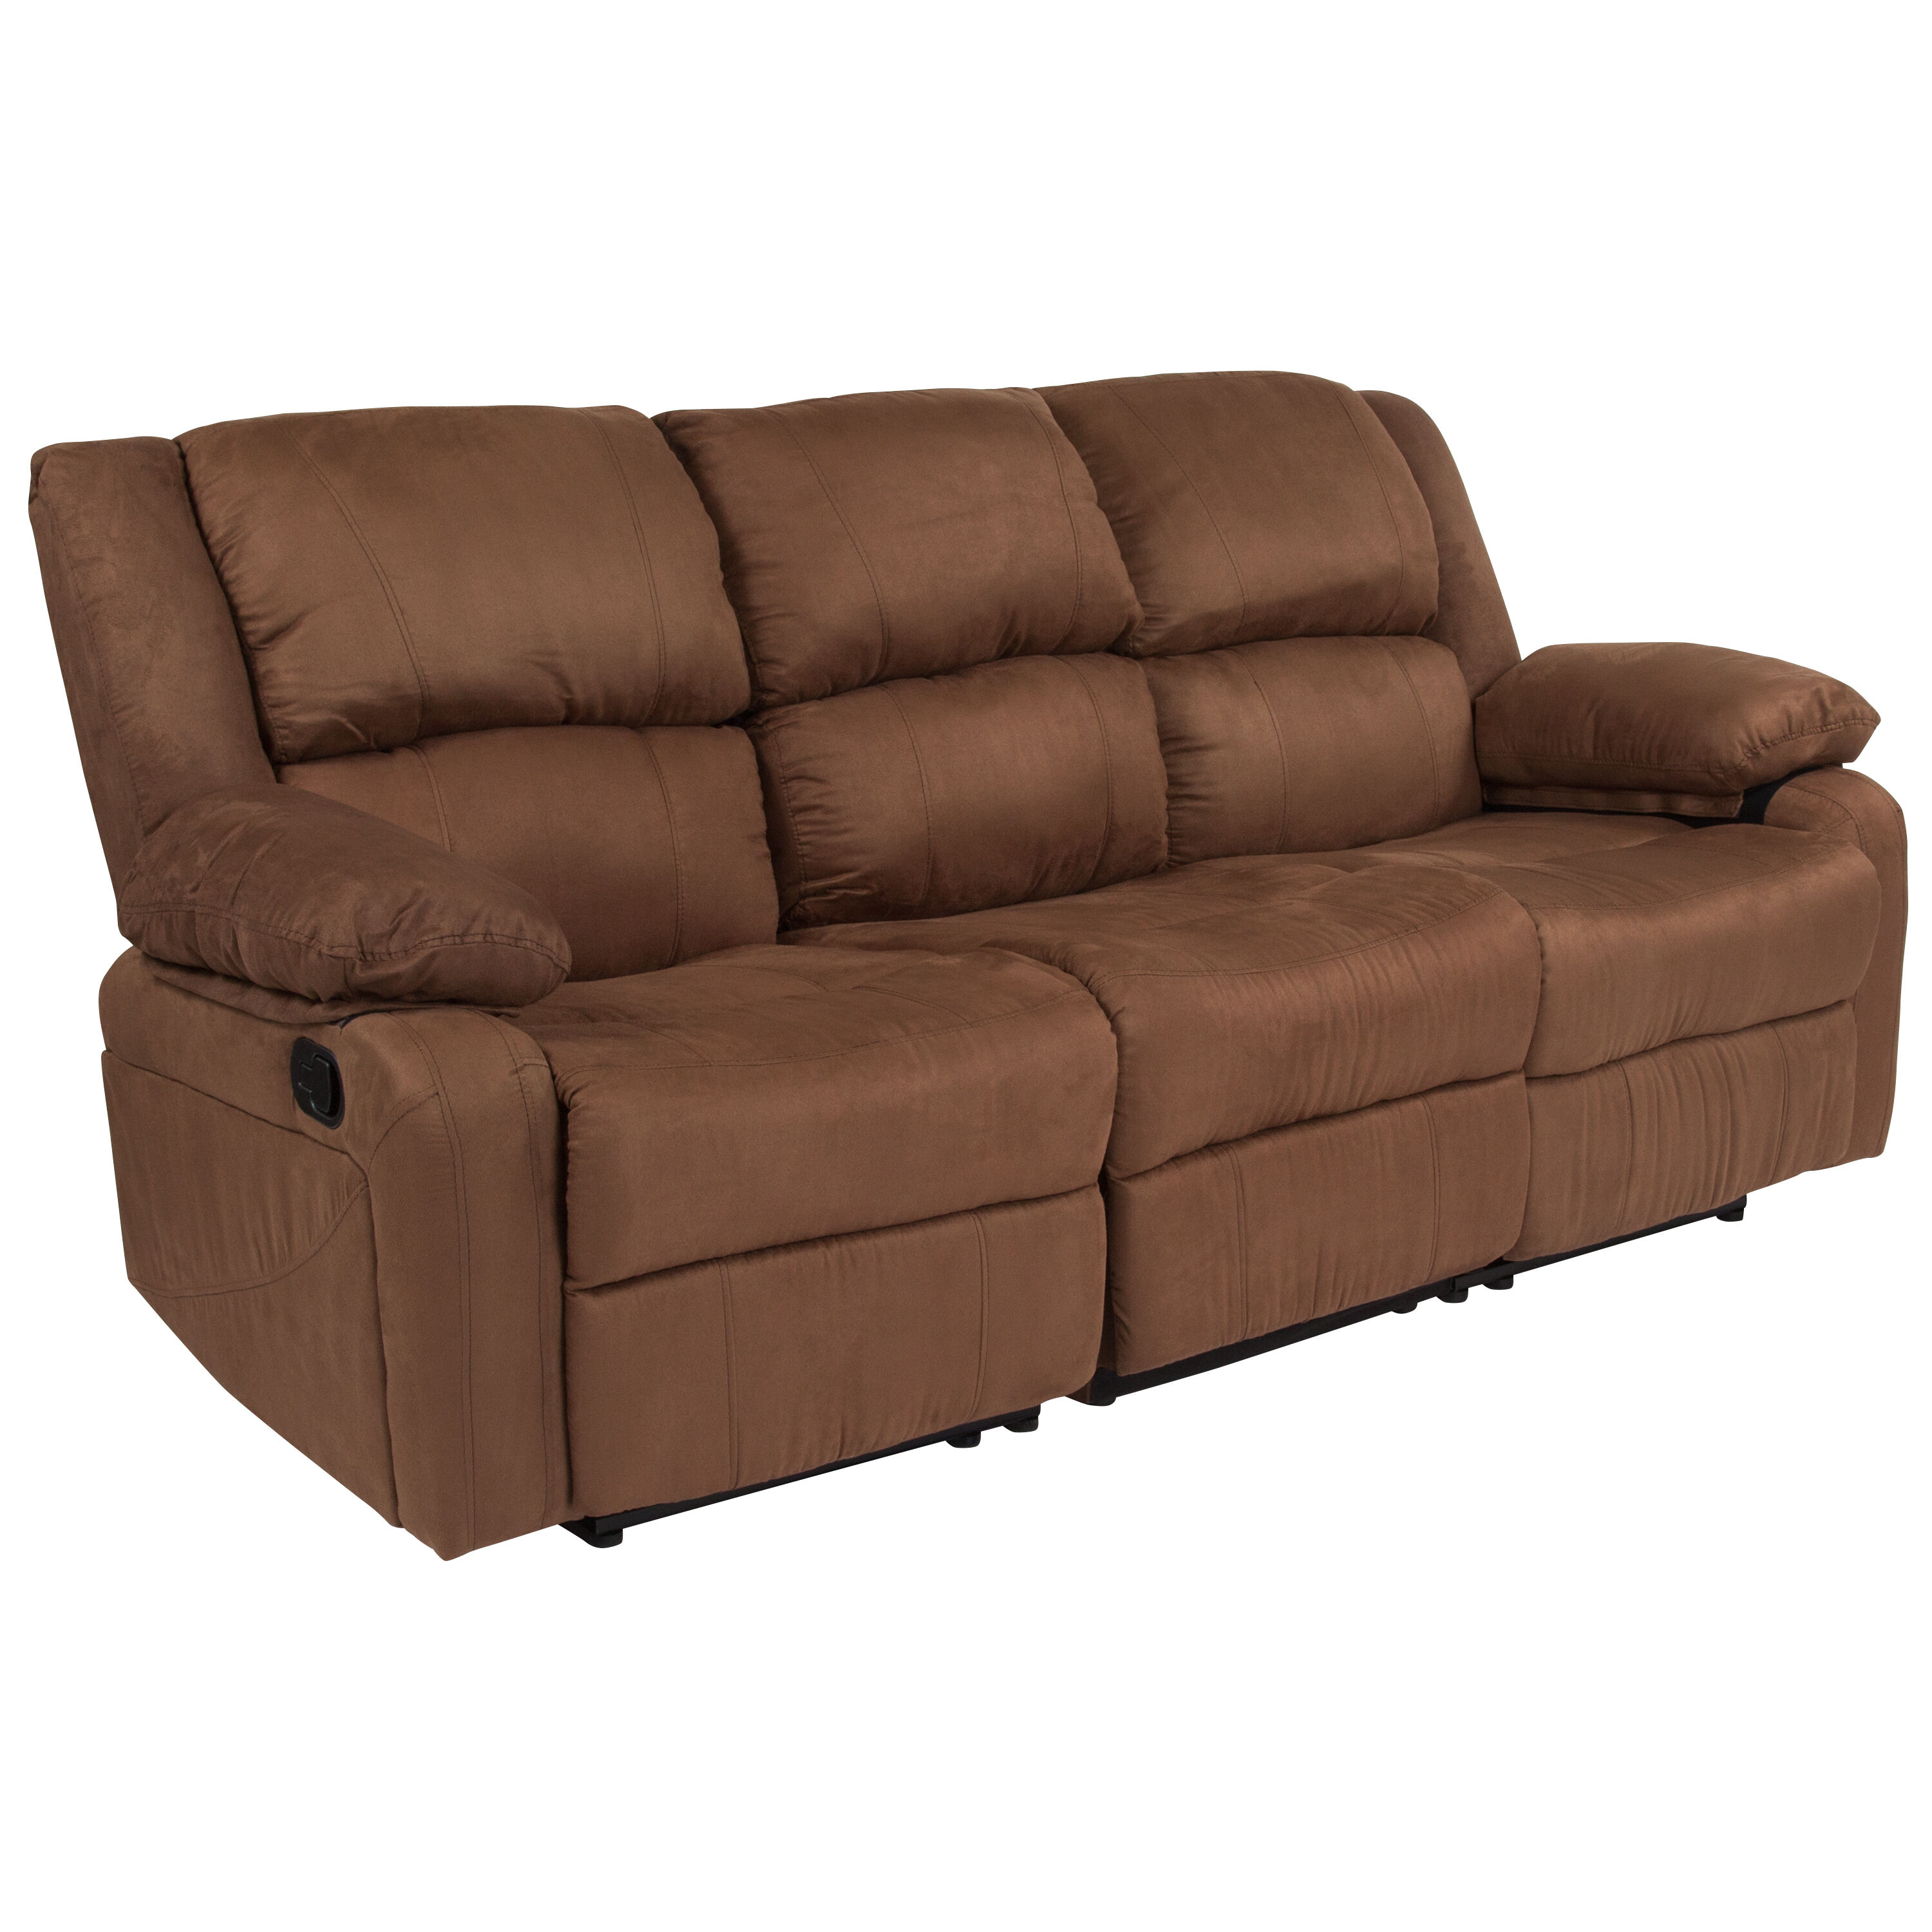 ... Our Harmony Series Chocolate Brown Microfiber Sofa With Two Built In  Recliners Is On Sale ...